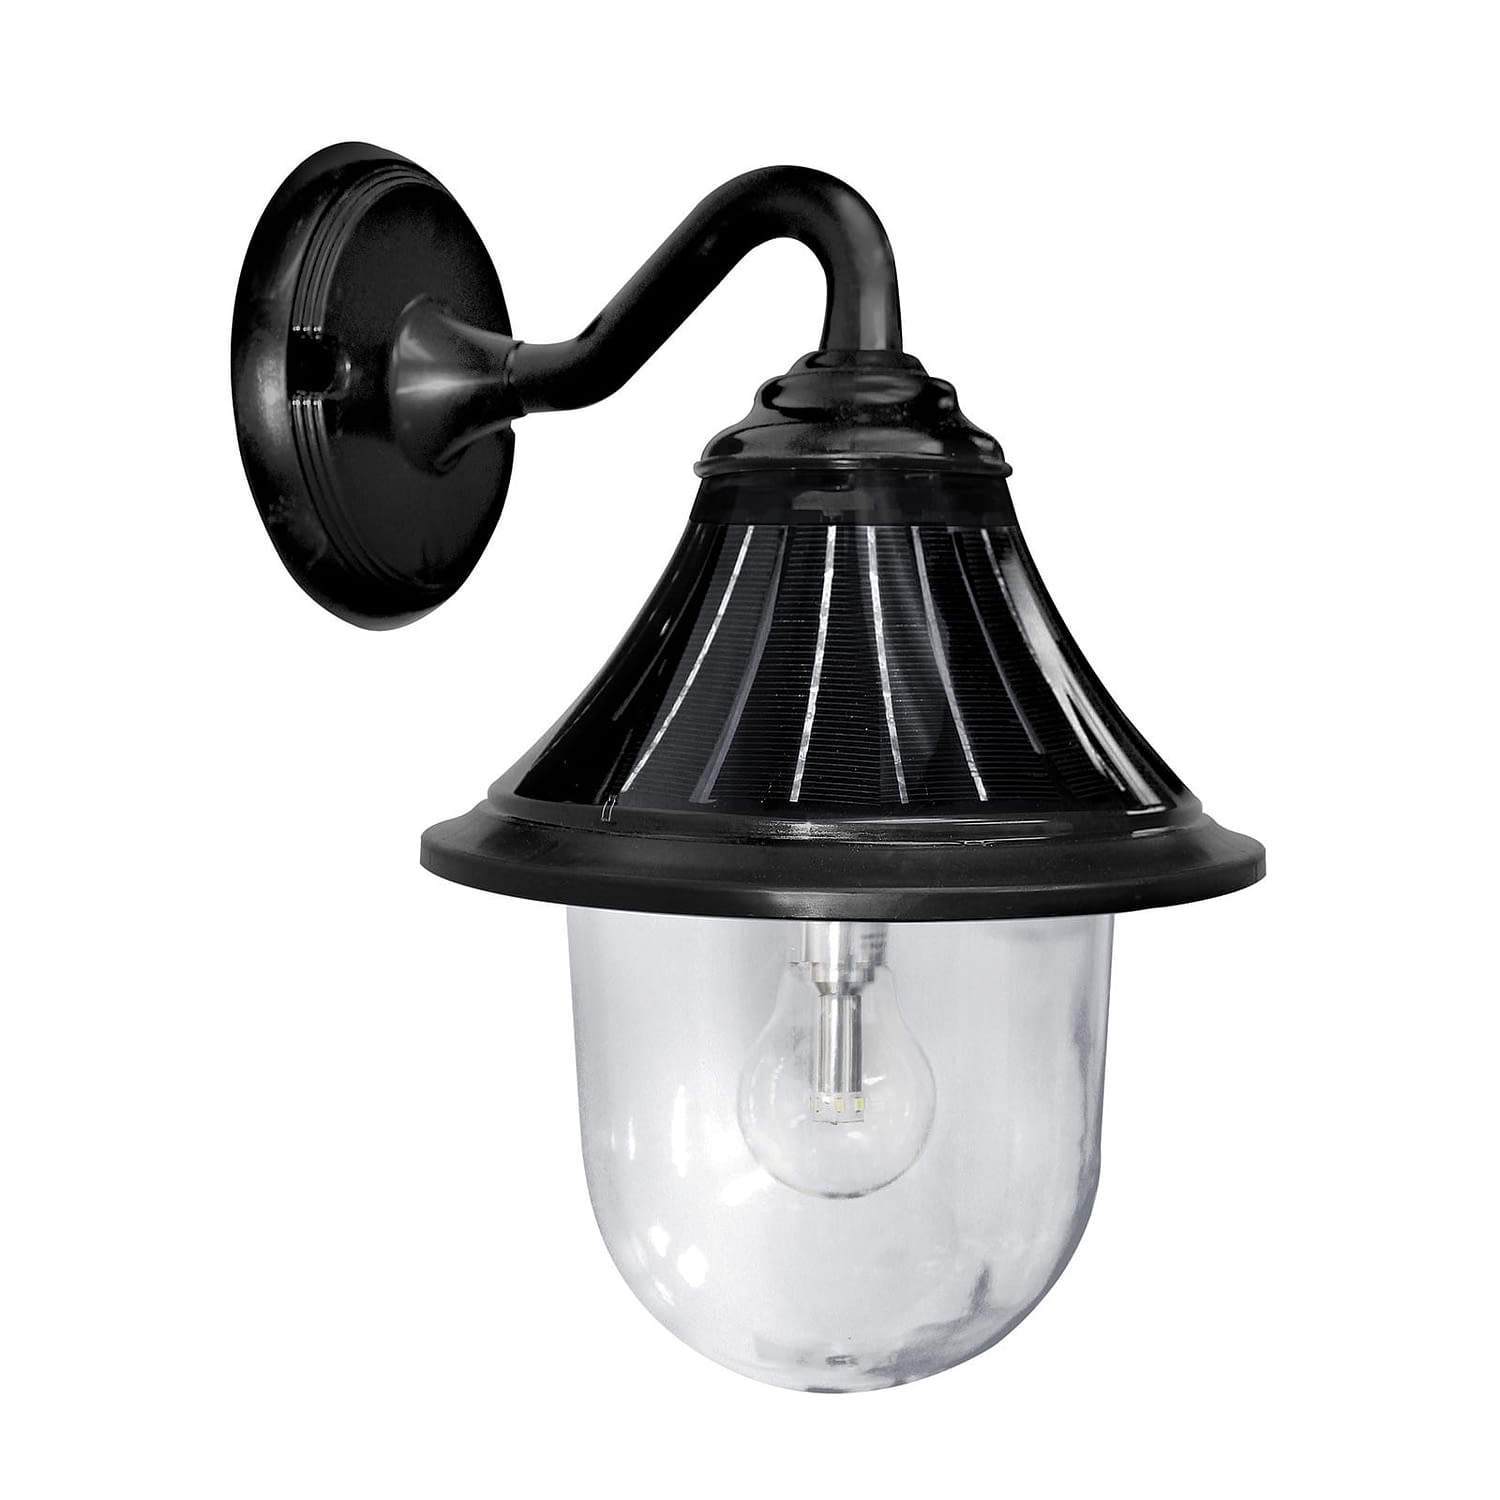 Orion Solar Wall Lamp GS-123W by Gama Sonic